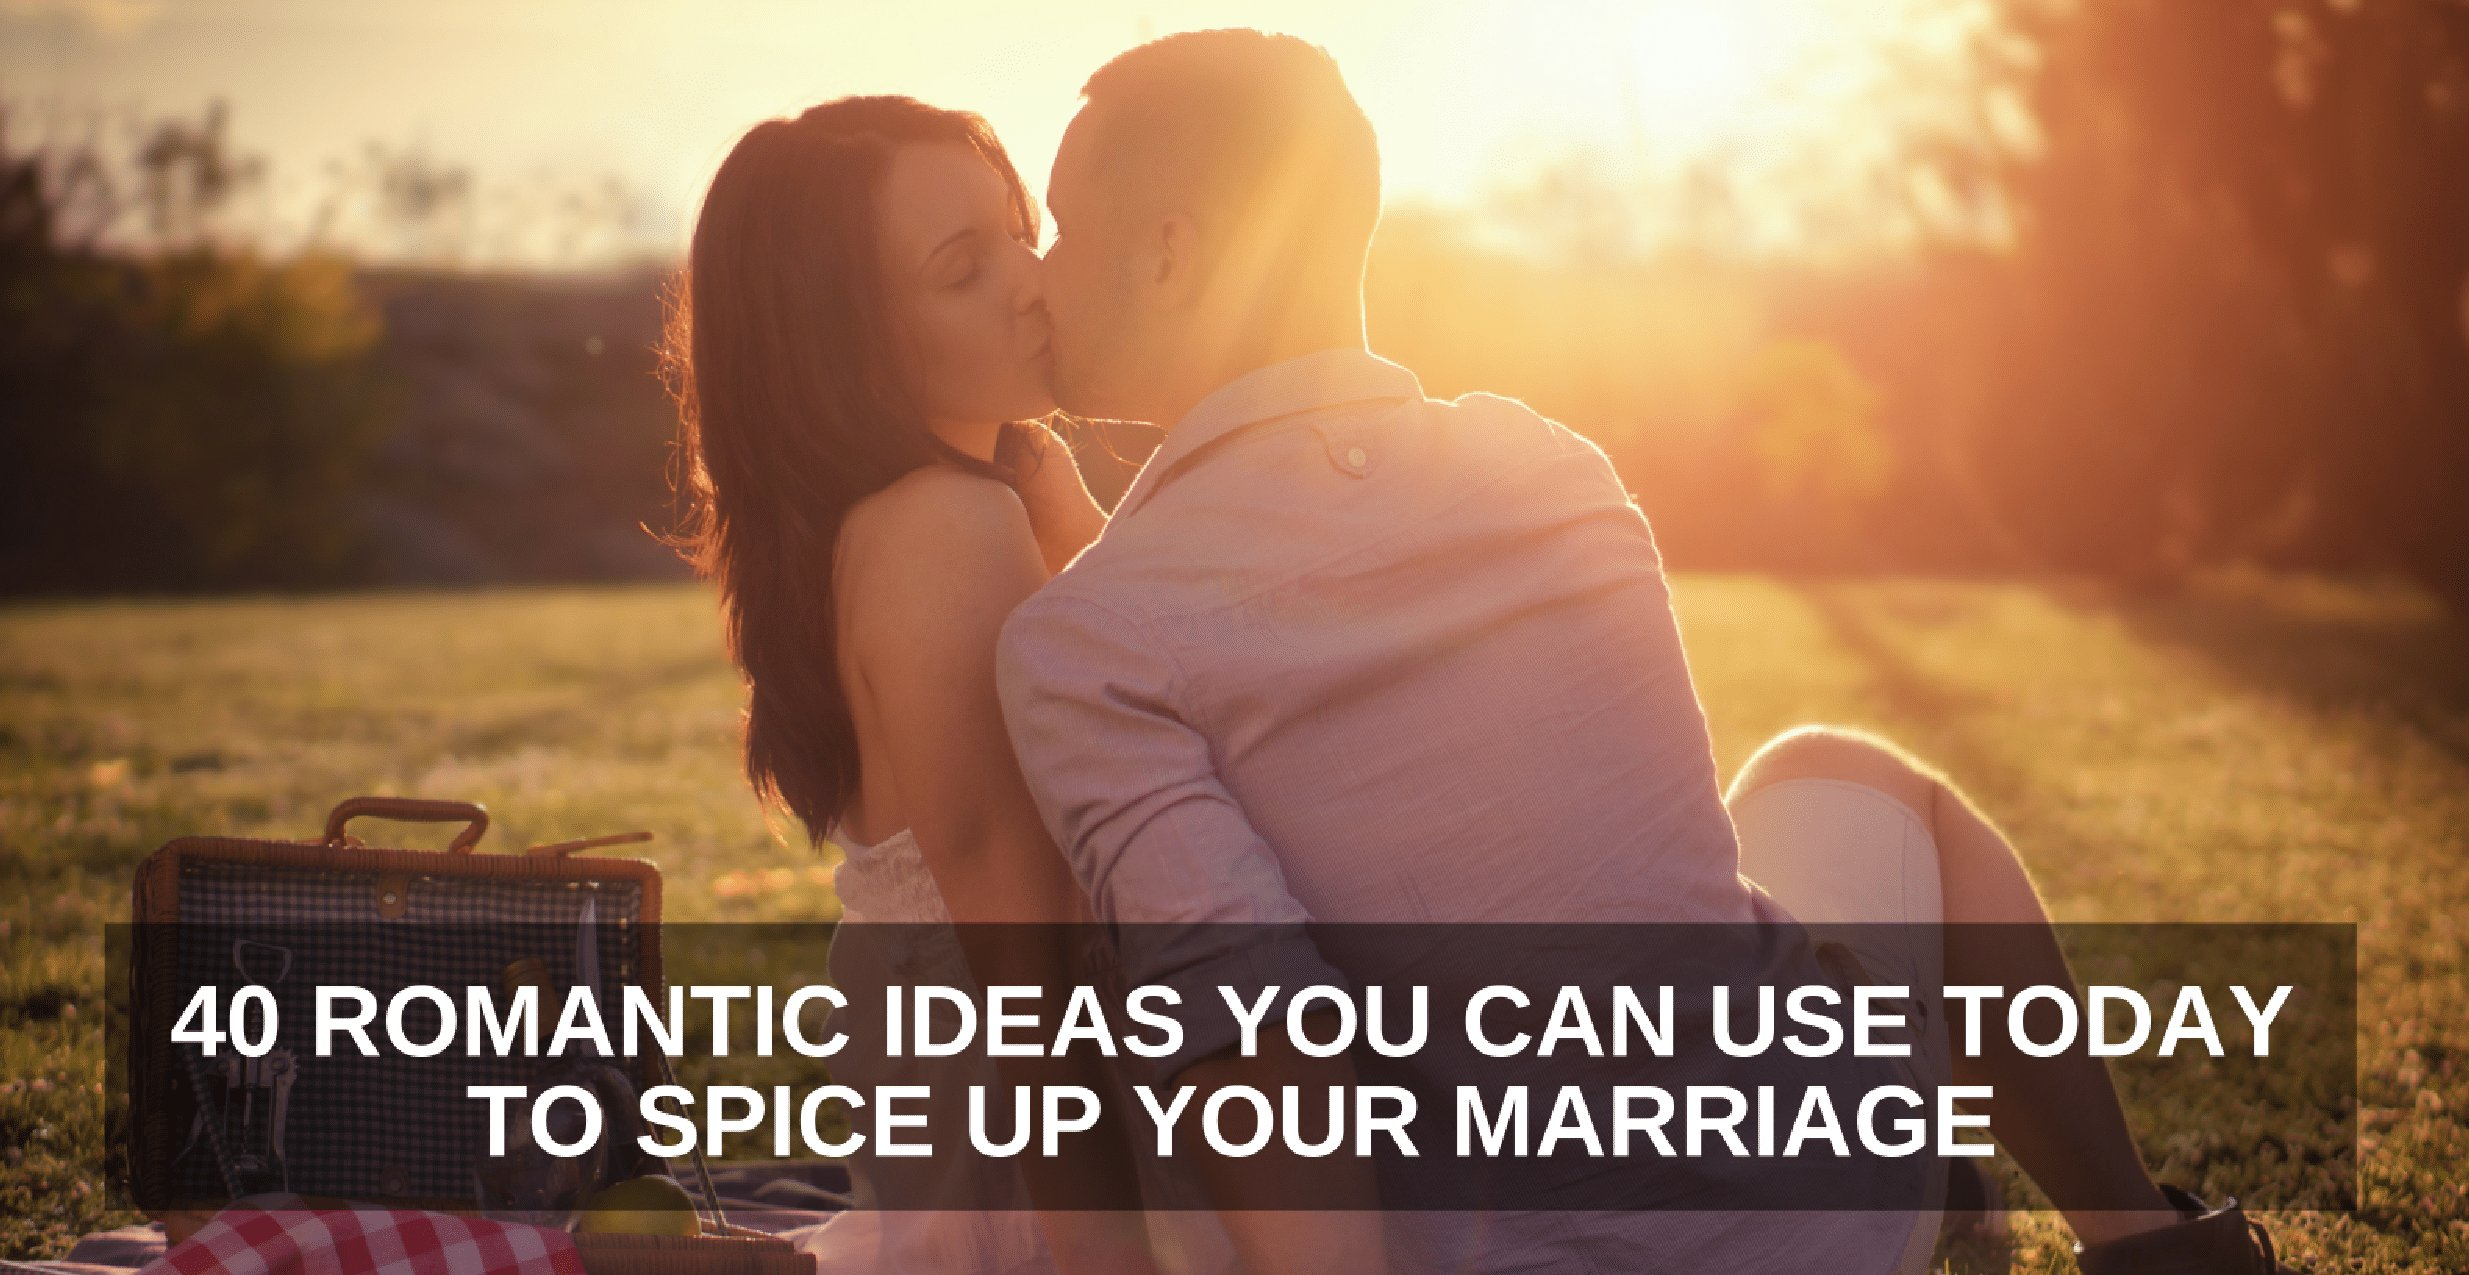 40 Romantic Ideas You Can Use Today